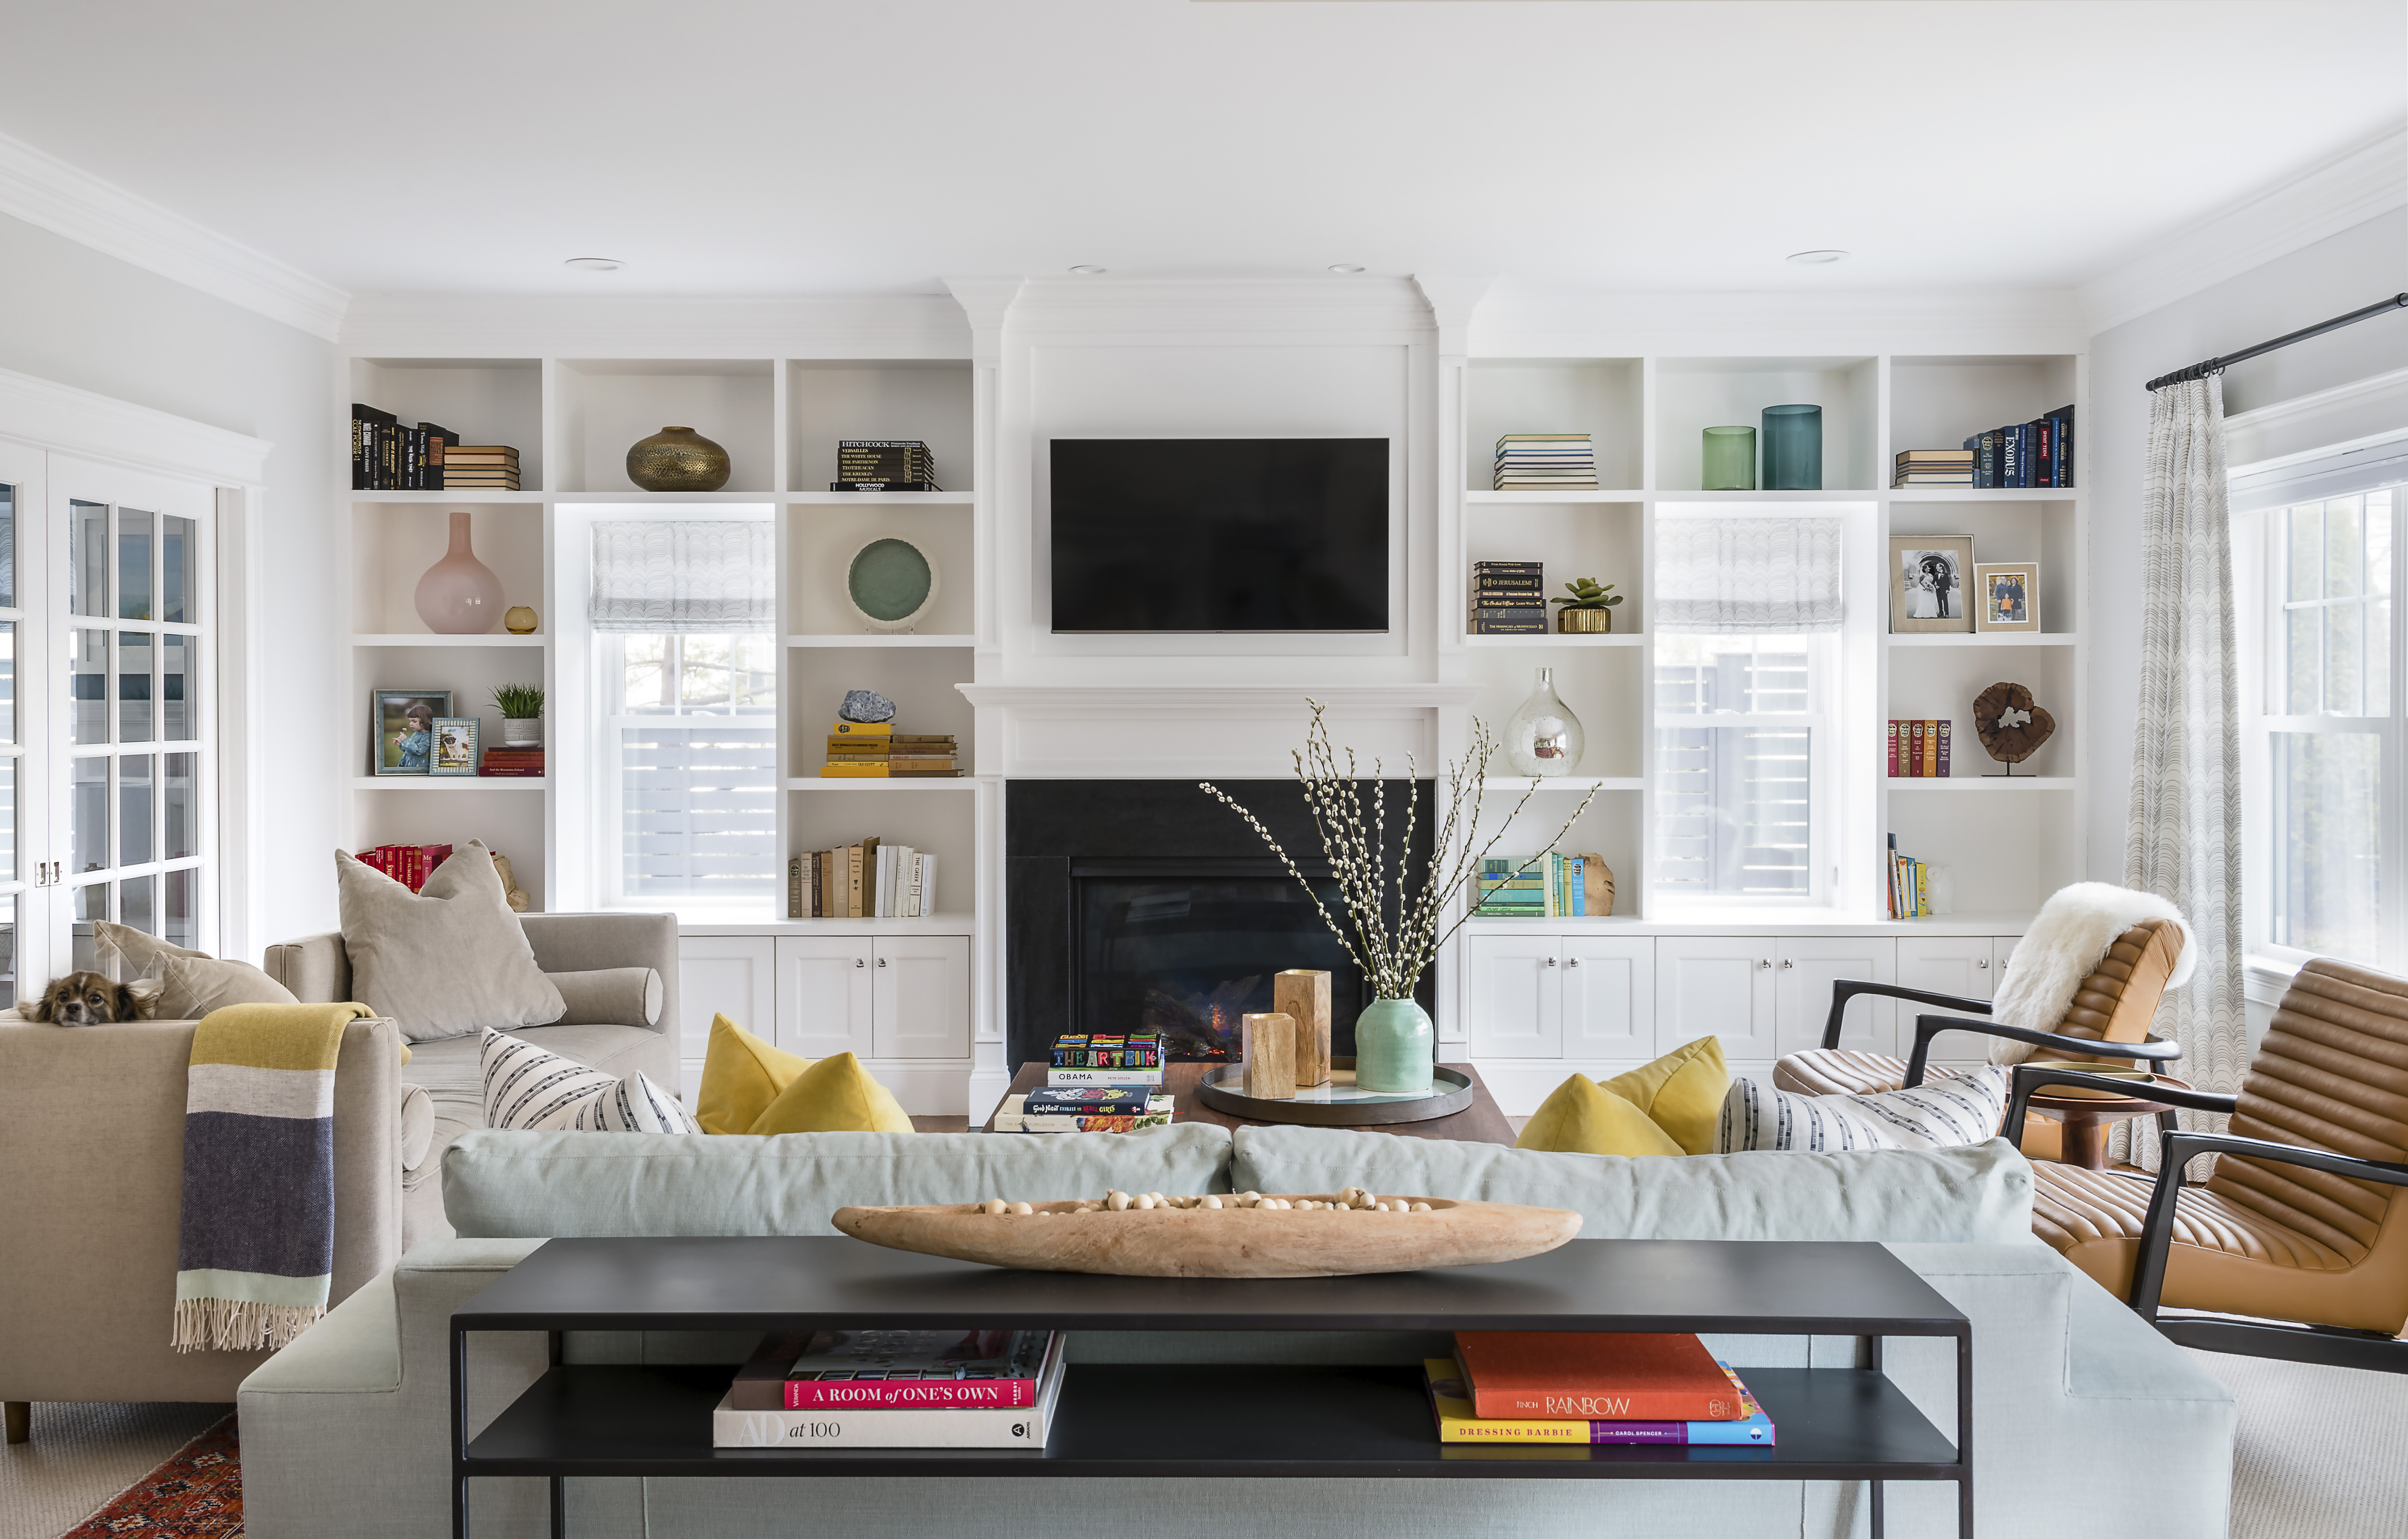 Home design ideas: Bringing pops of color into a family room - The